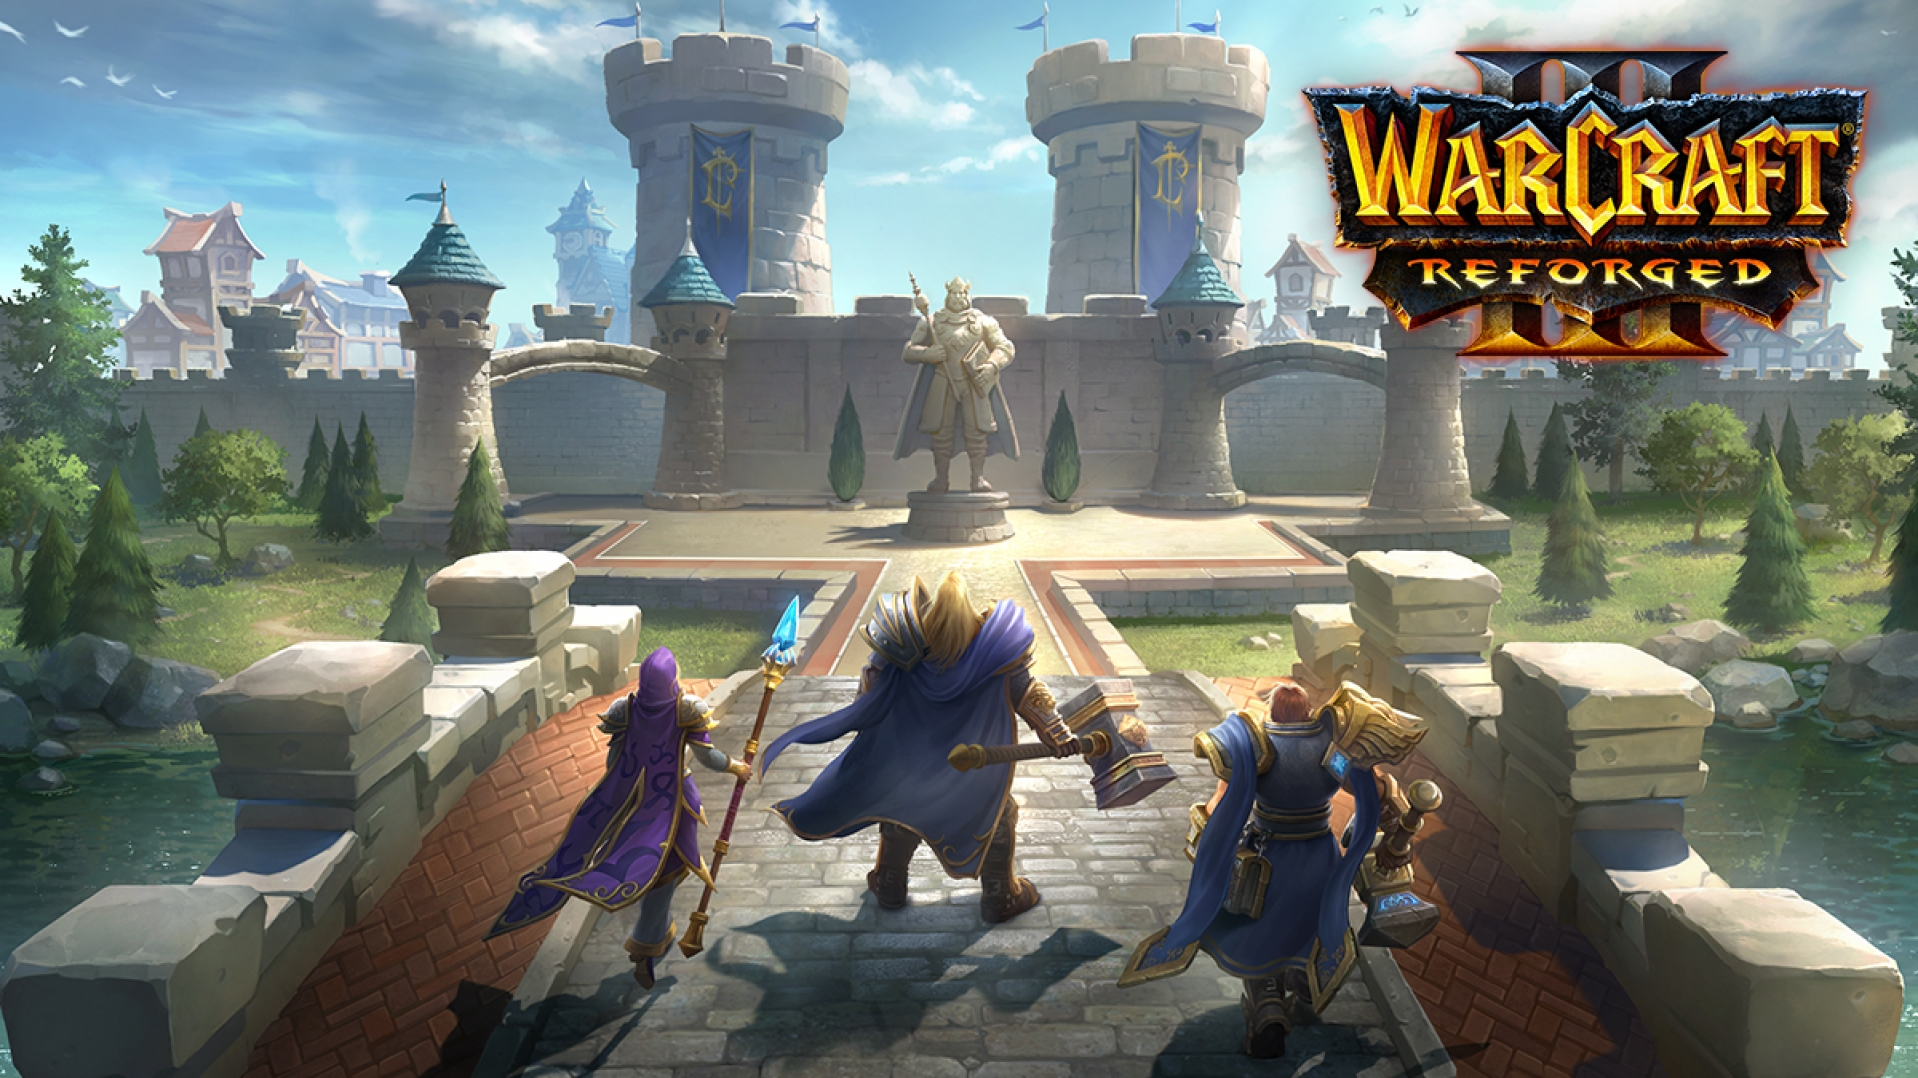 Amd S Radeon Software Is Now Ready For Warcraft Iii Reforged And Journey To The Savage Planet Oc3d News